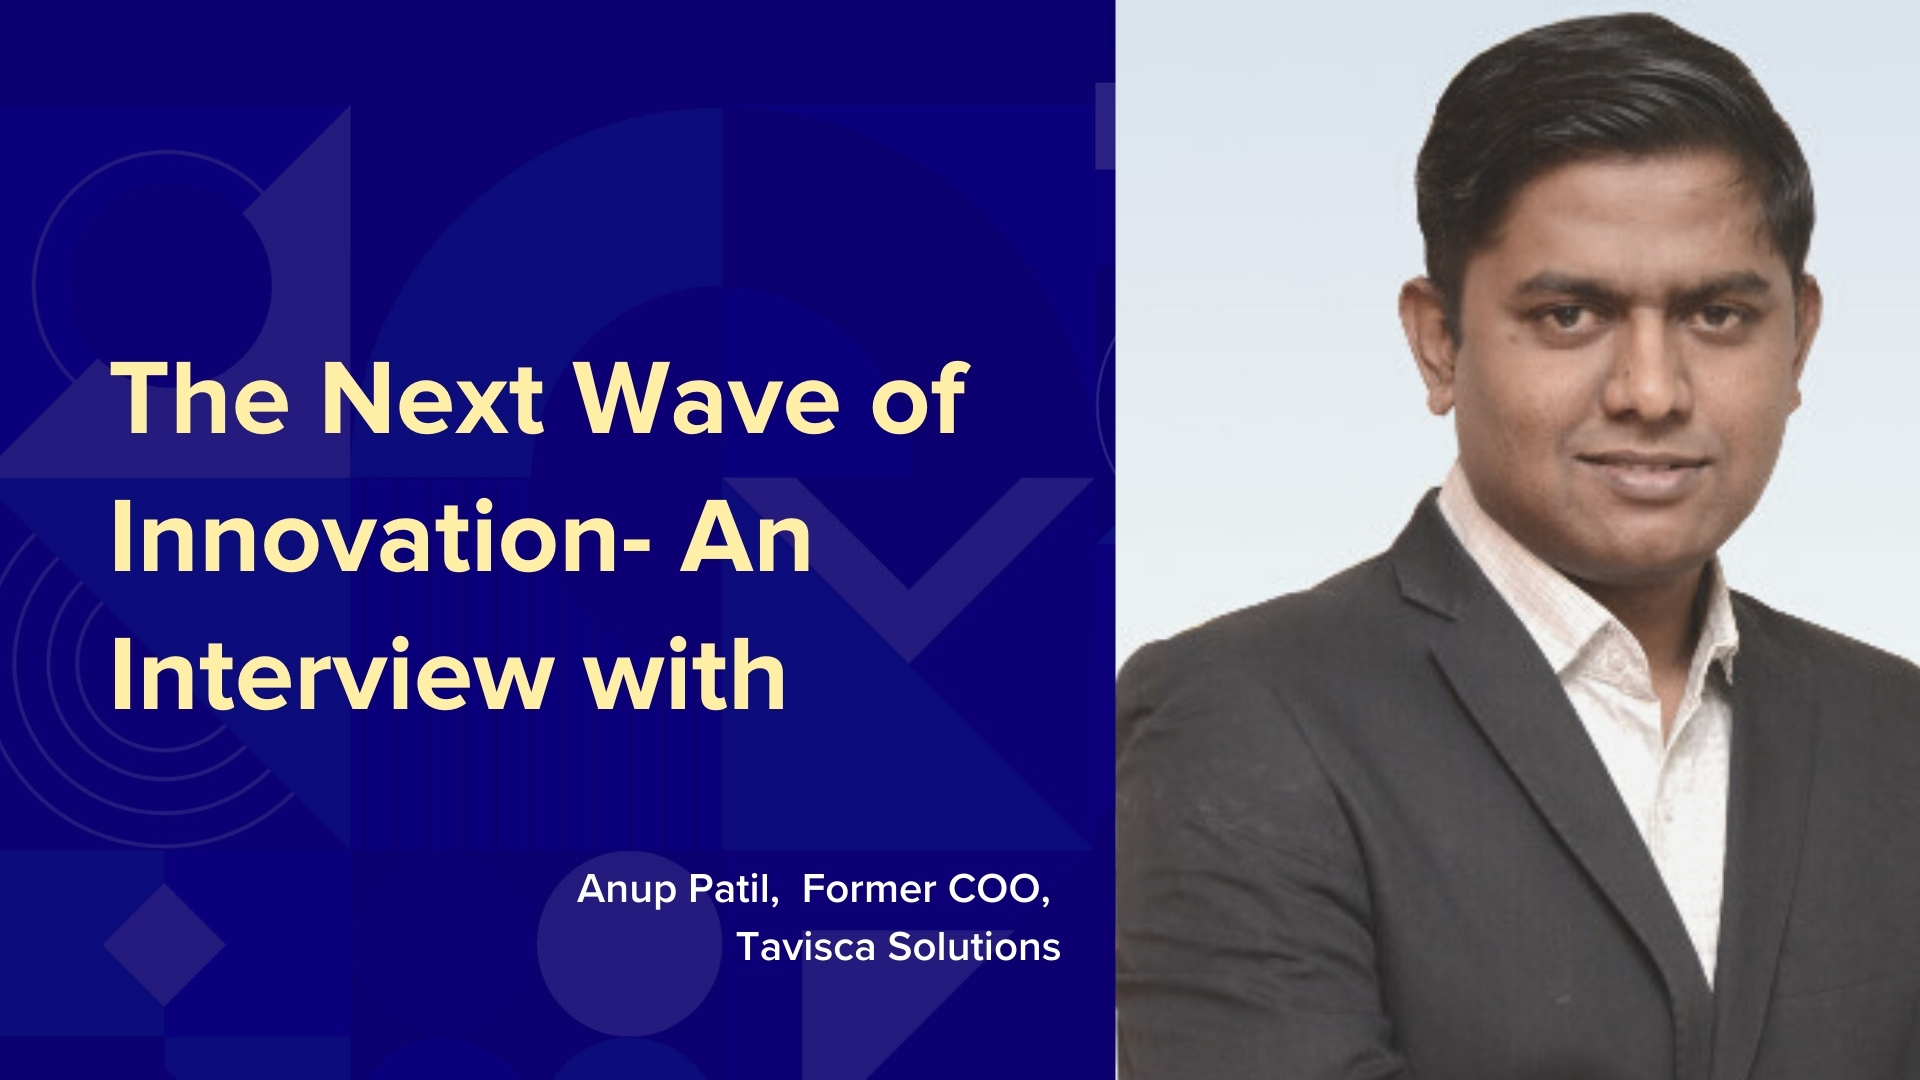 The Next Wave of Innovation